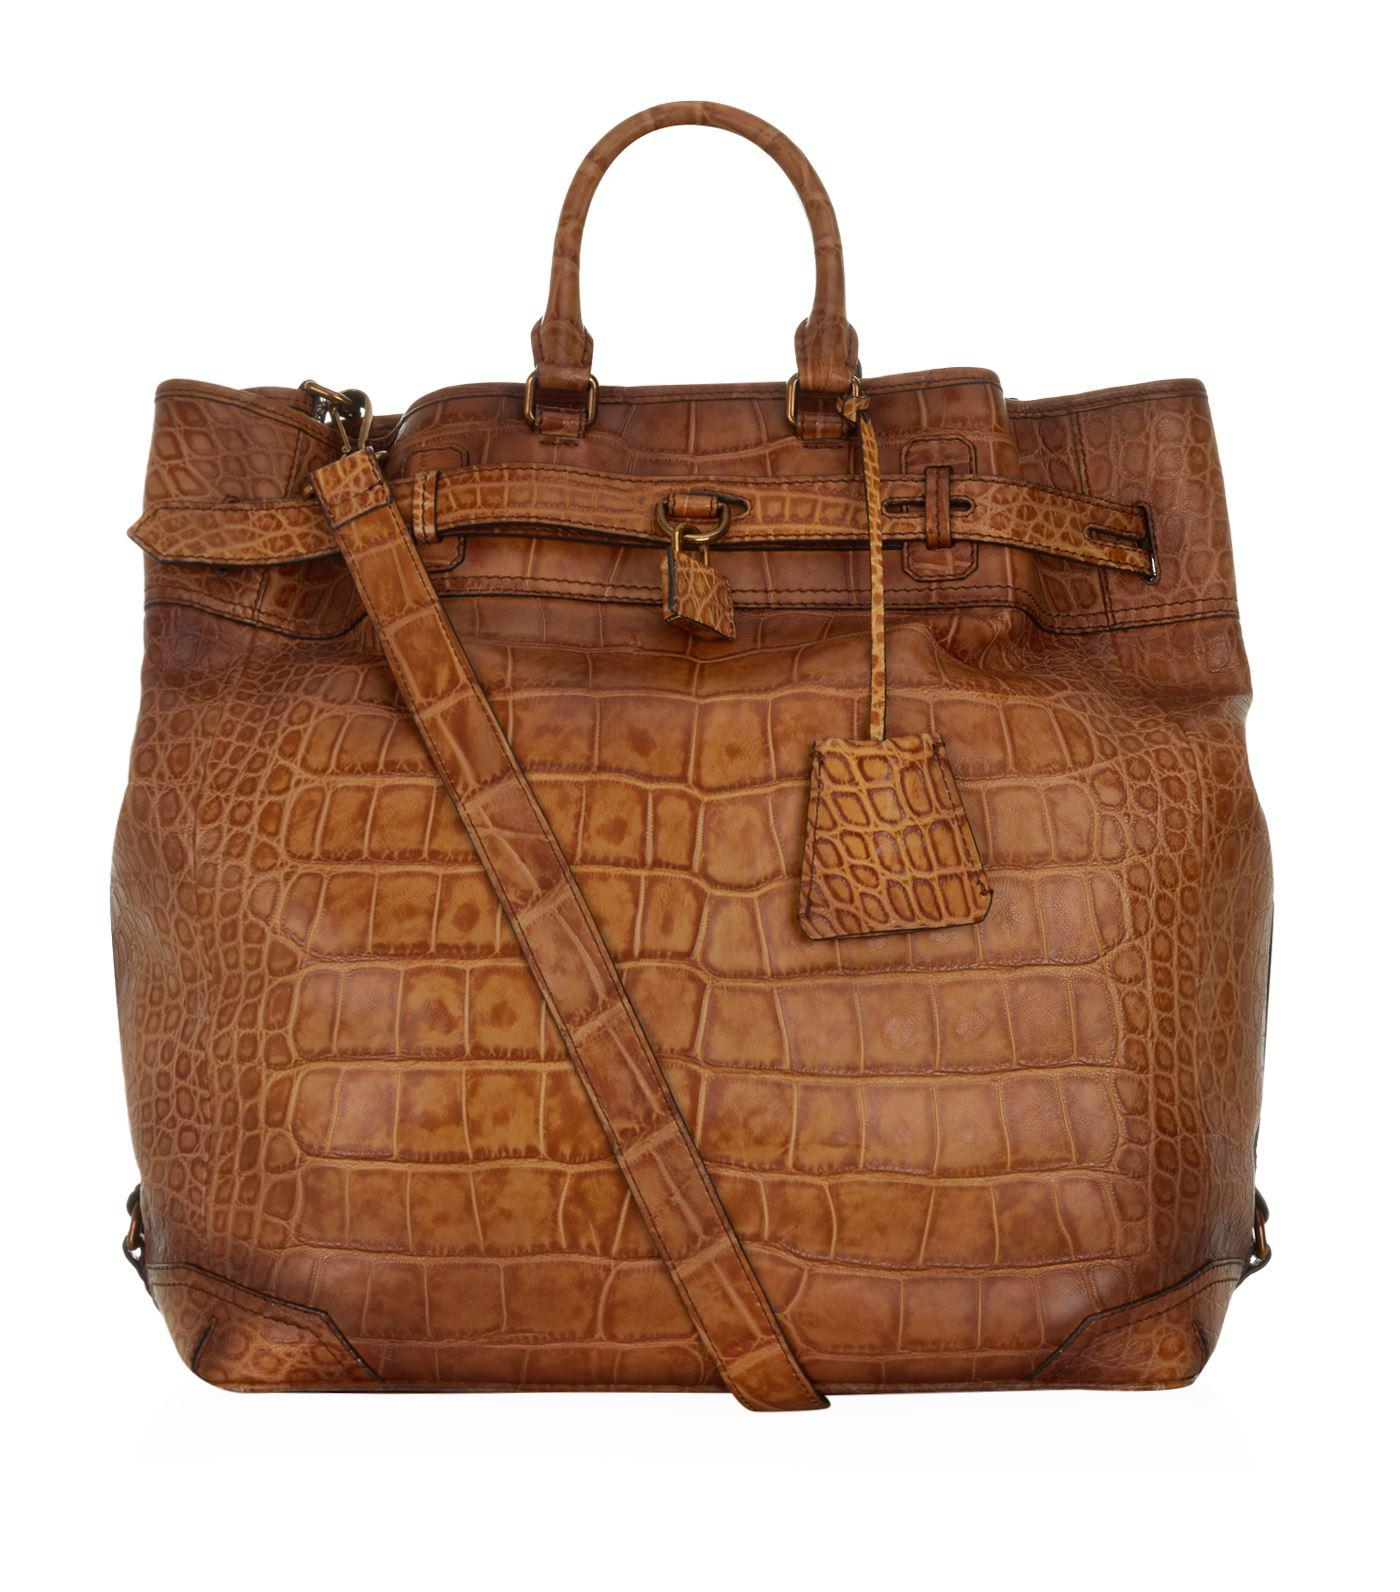 0c10f124a063 Lyst - Burberry Alligator Travel Bag in Brown